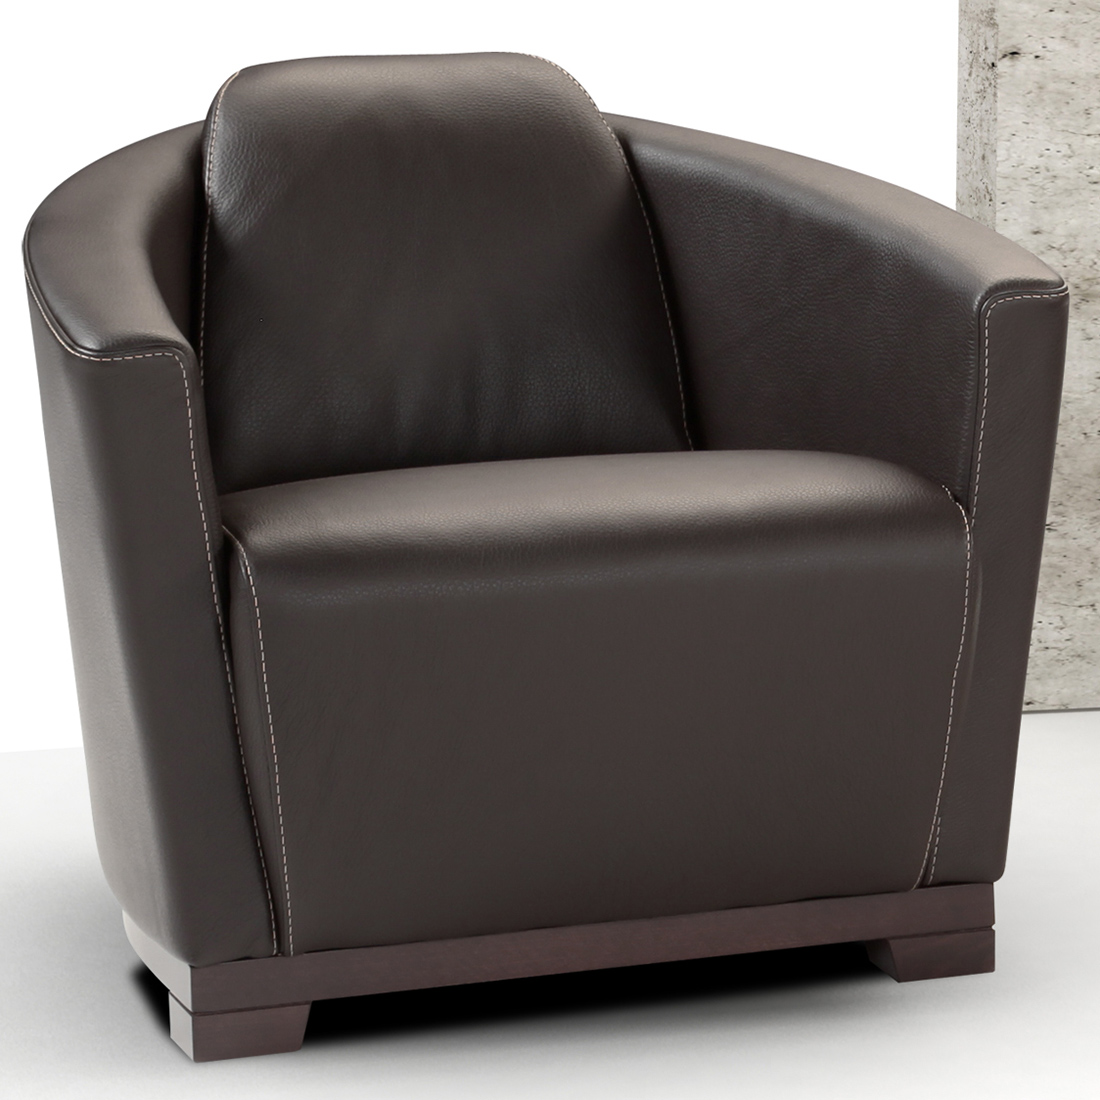 Astonishing Hotel Accent Chair In Chocolate Brown Top Grain Italian Leather By J And M Furniture Theyellowbook Wood Chair Design Ideas Theyellowbookinfo